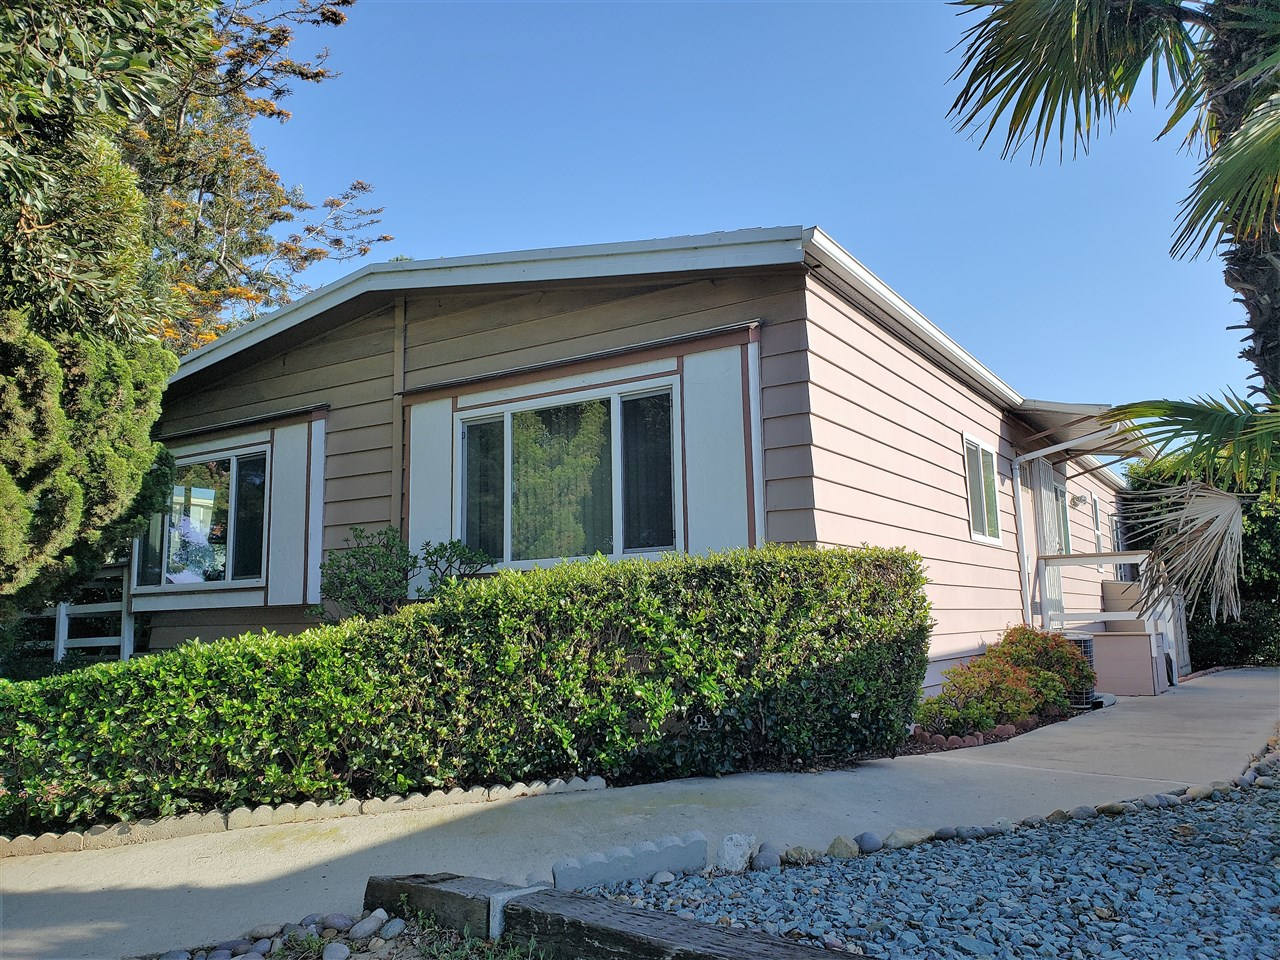 Example of a Manufactured home in San Diego